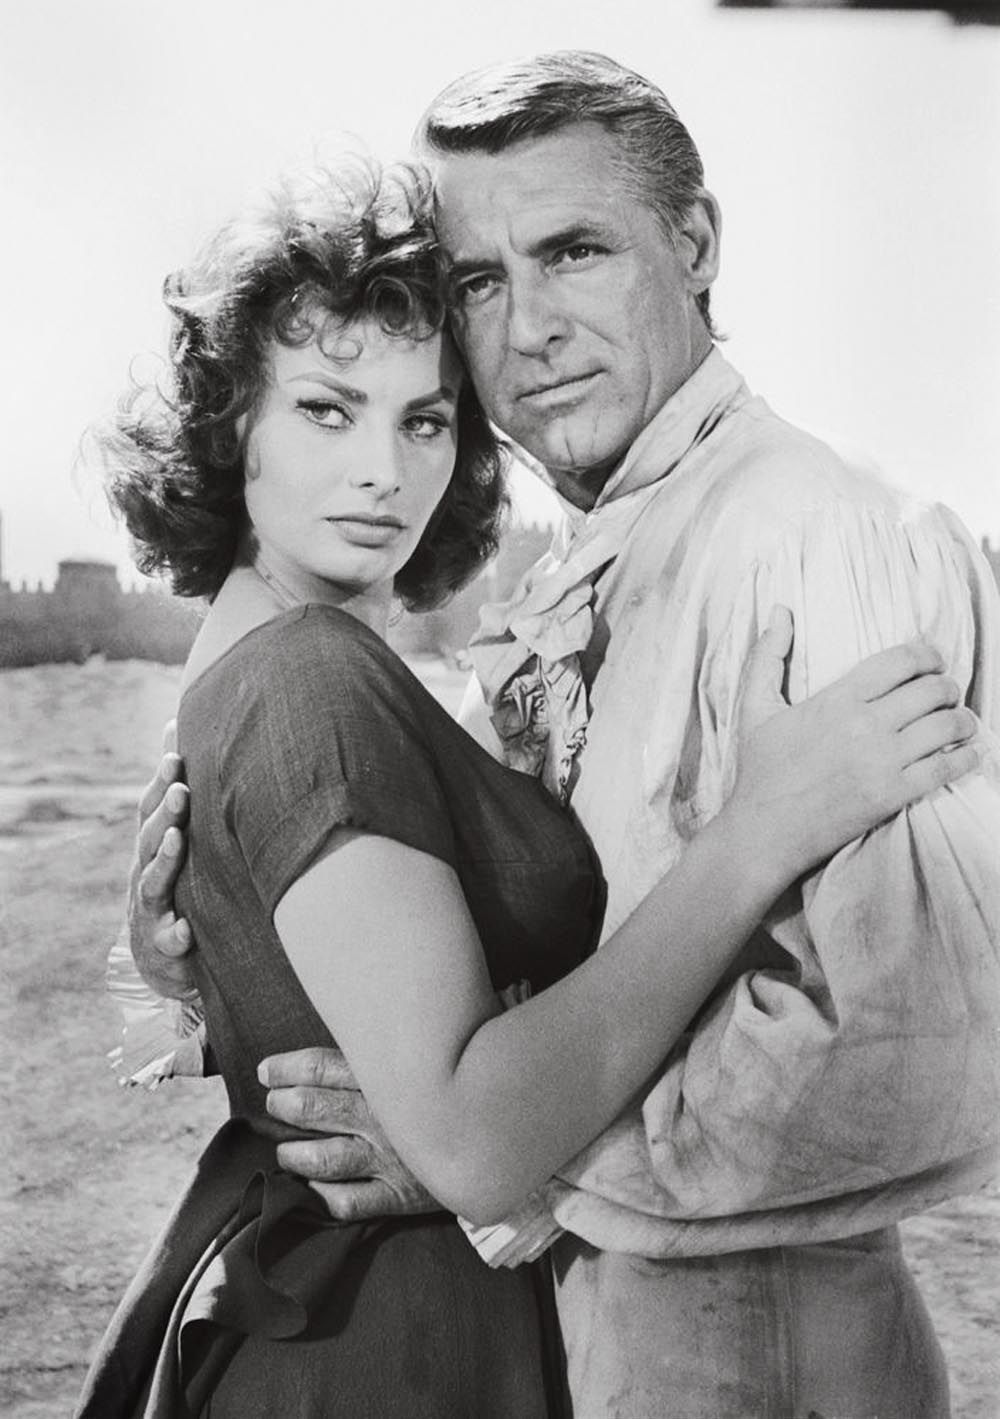 Sophia Loren and Cary Grant films (With images) Sophia